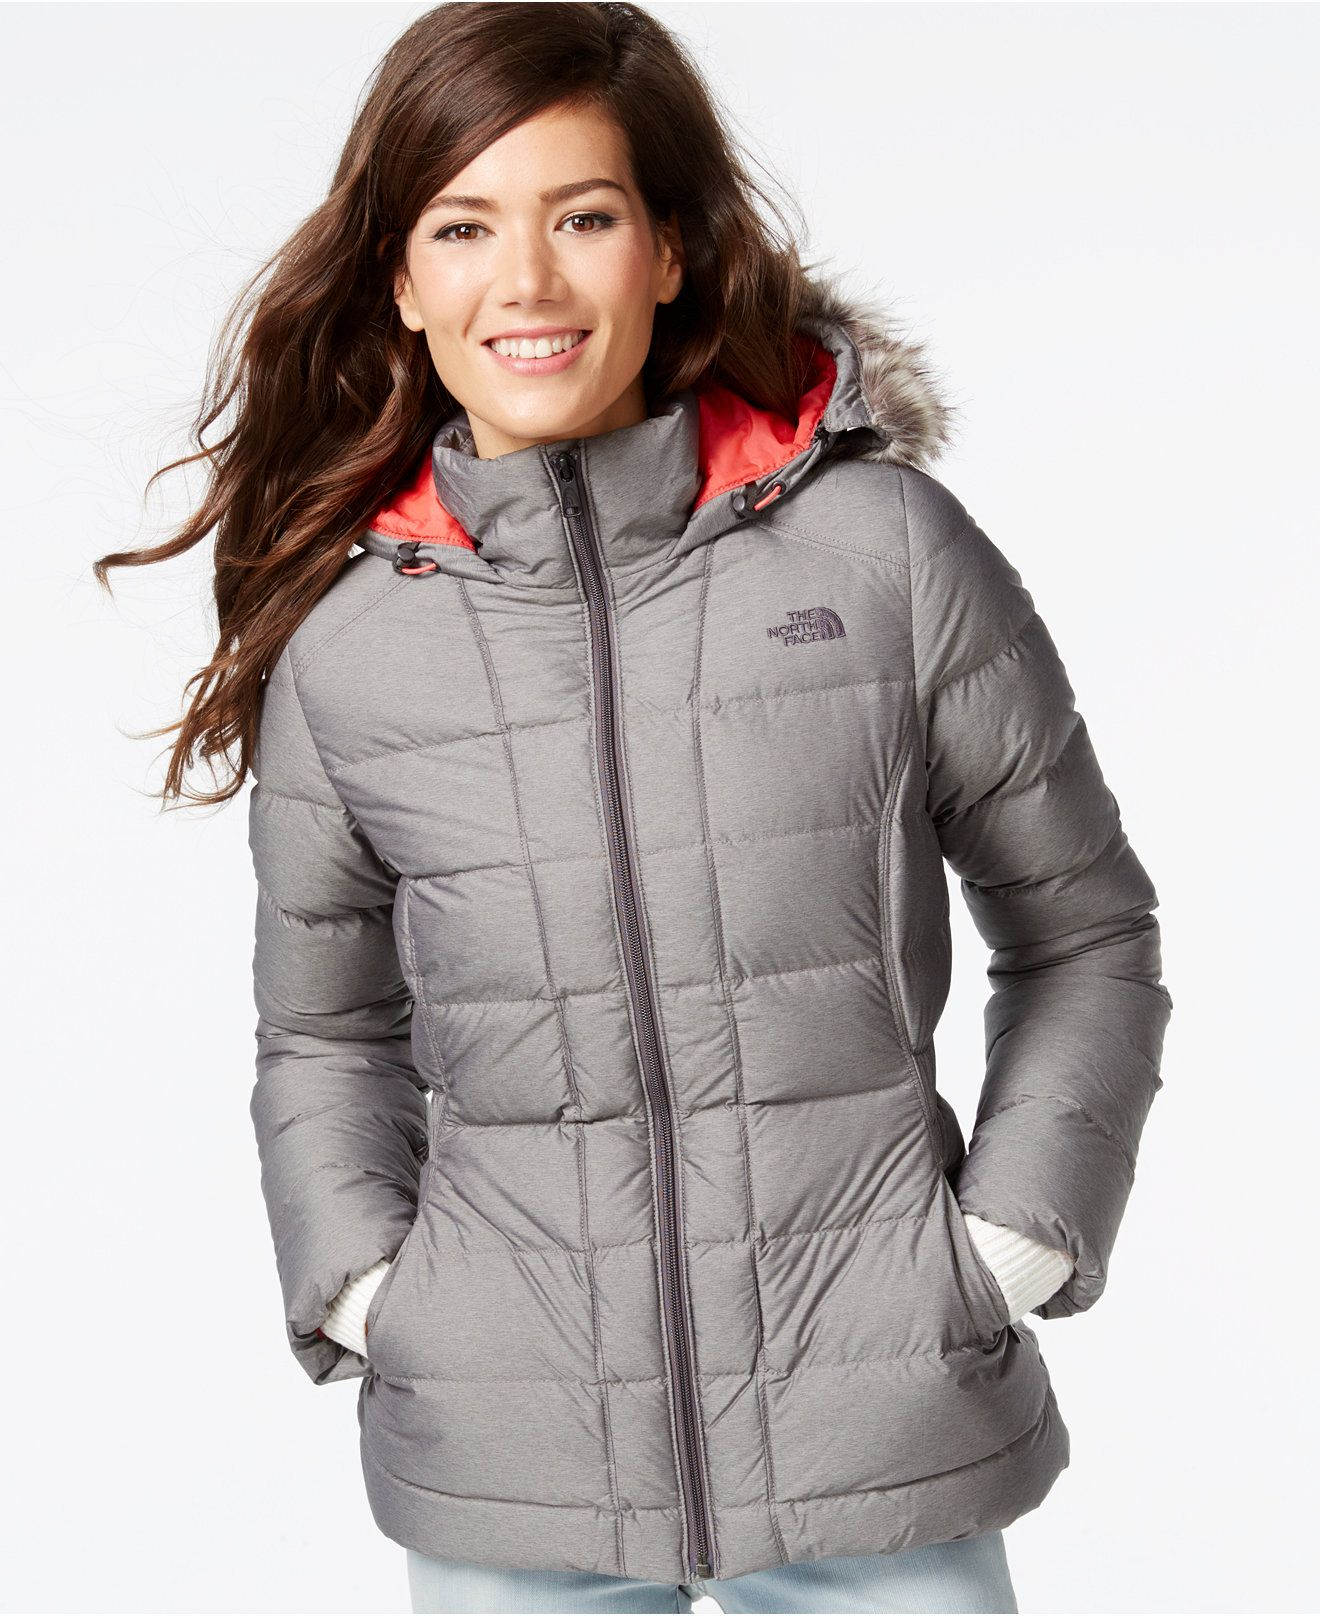 The North Face Gotham Full Zip Down Jacket Juniors Jackets Vests Macy S Blazer Jackets For Women Jackets Juniors Jackets [ 1616 x 1320 Pixel ]